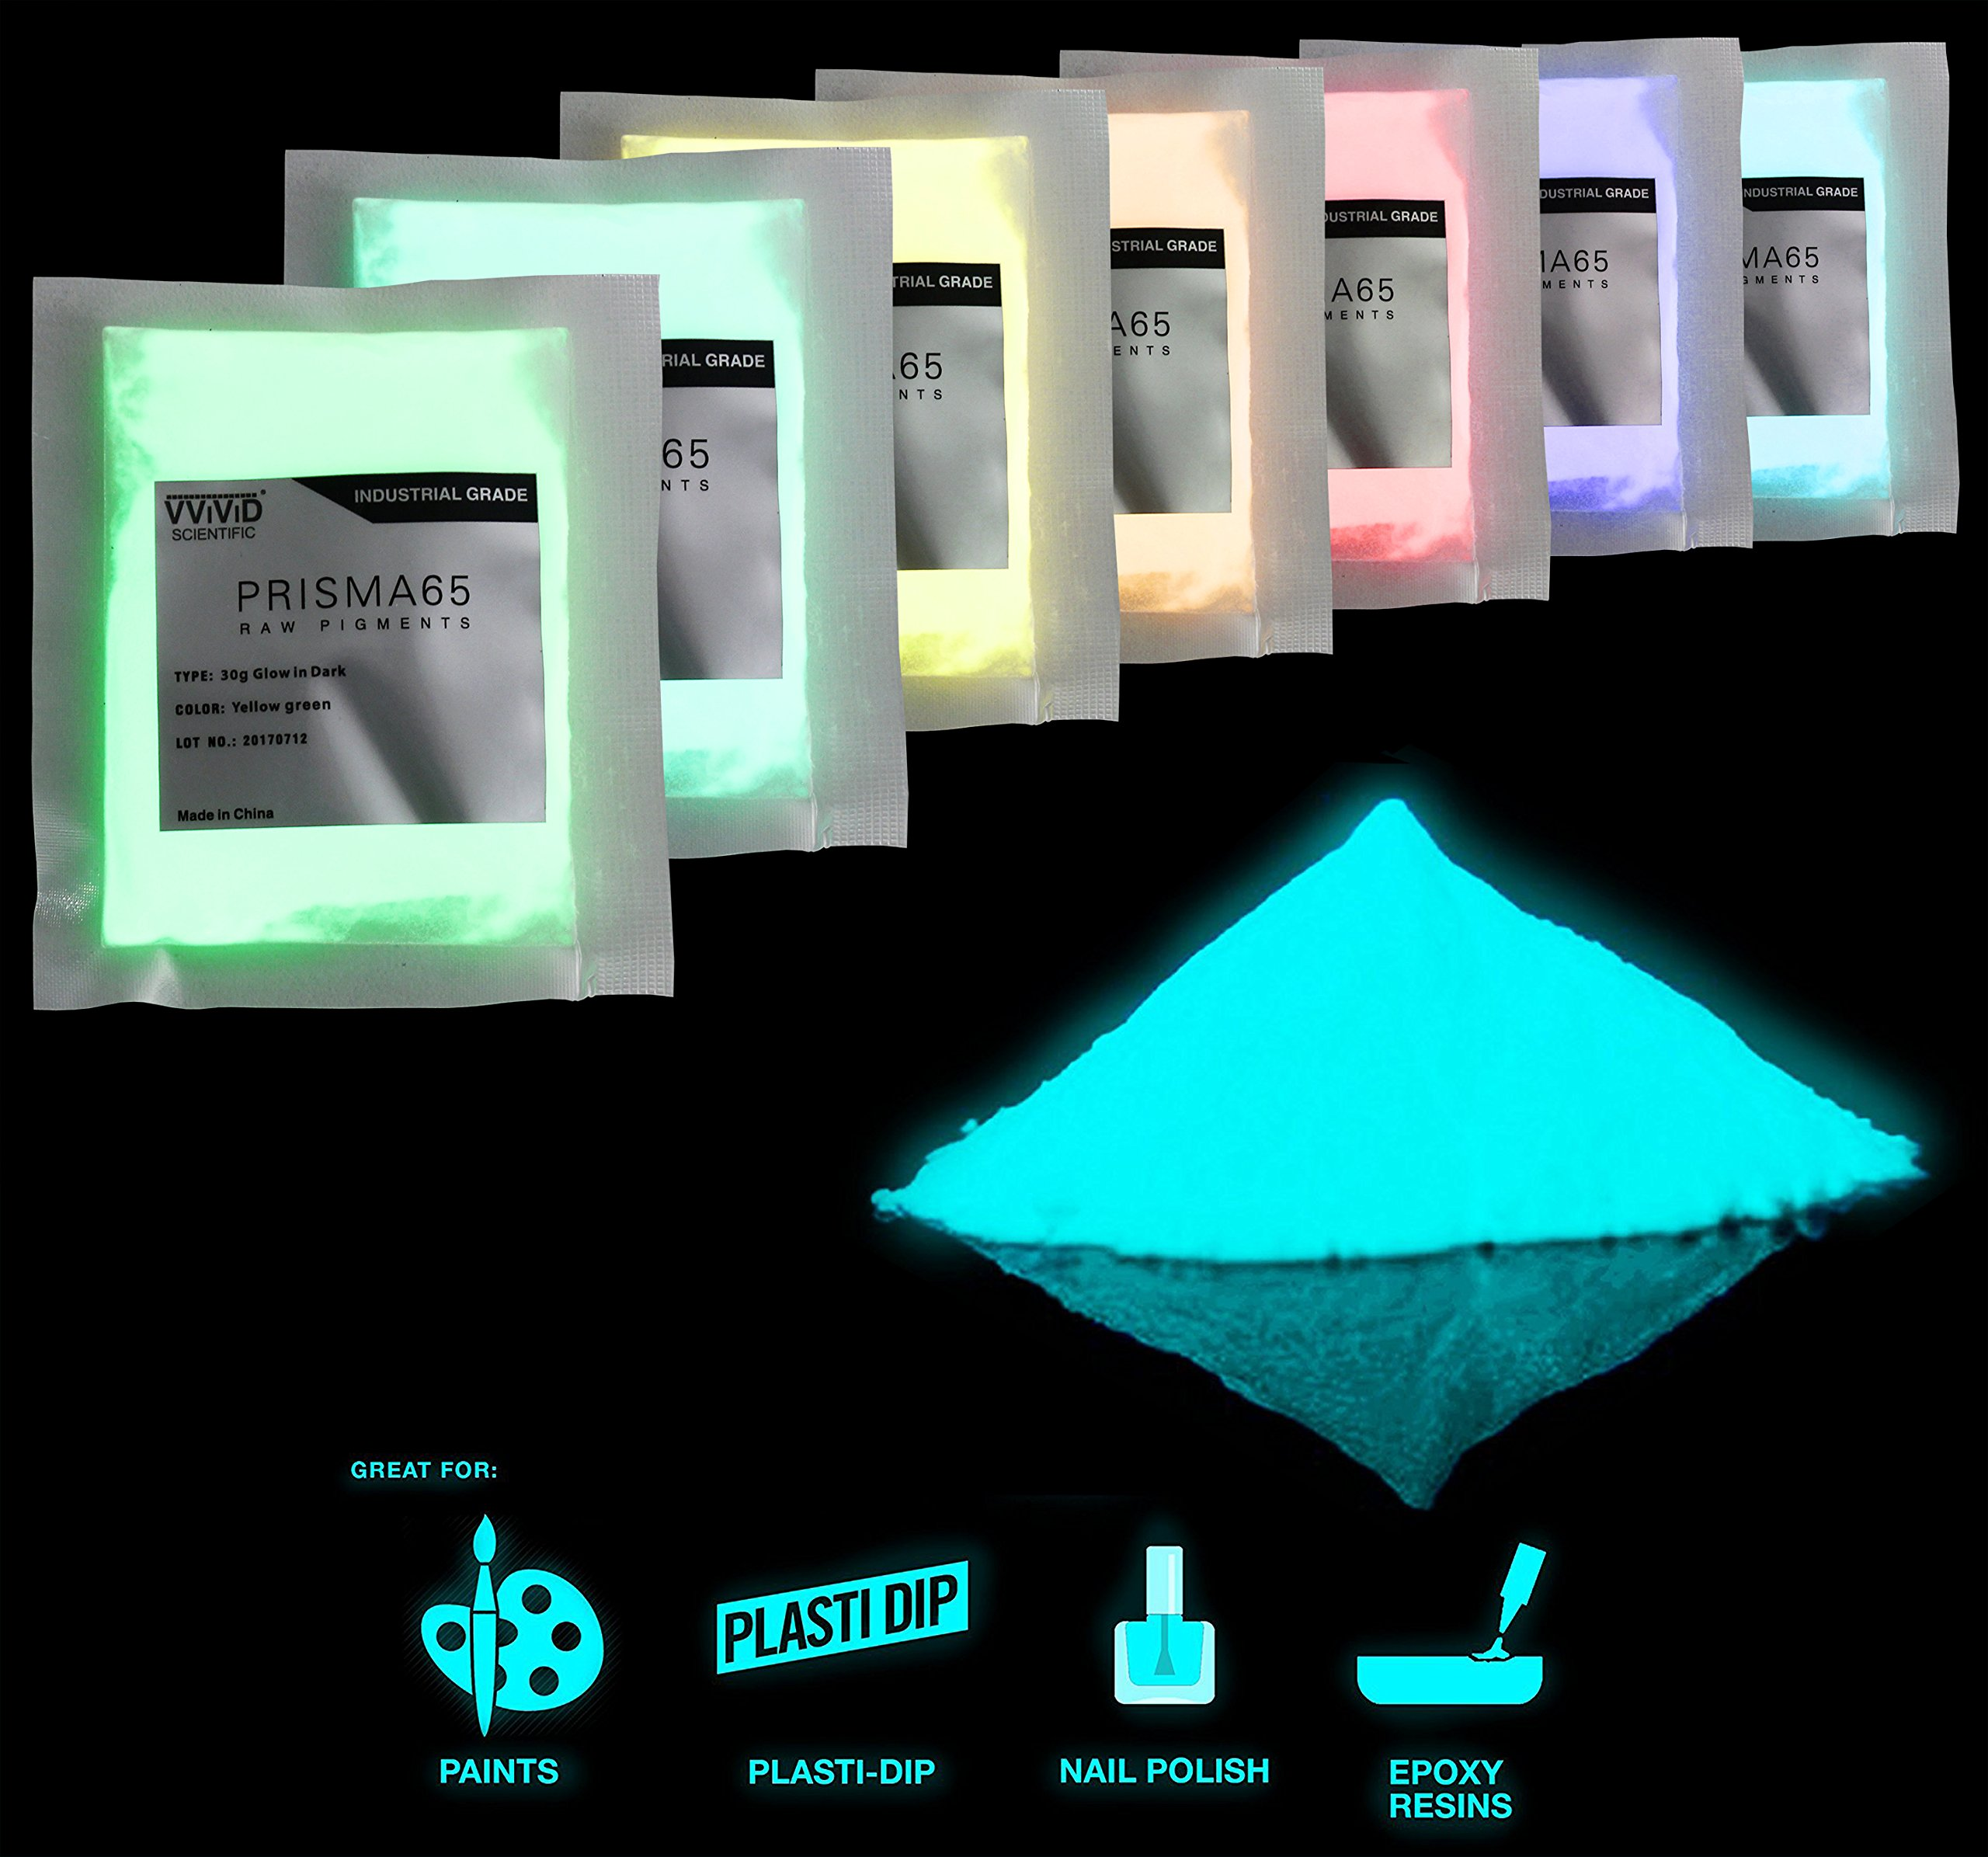 VViViD Prisma65 Glow in The Dark Pigment 30g Packet Multi Color Pack (7 Color Pack)